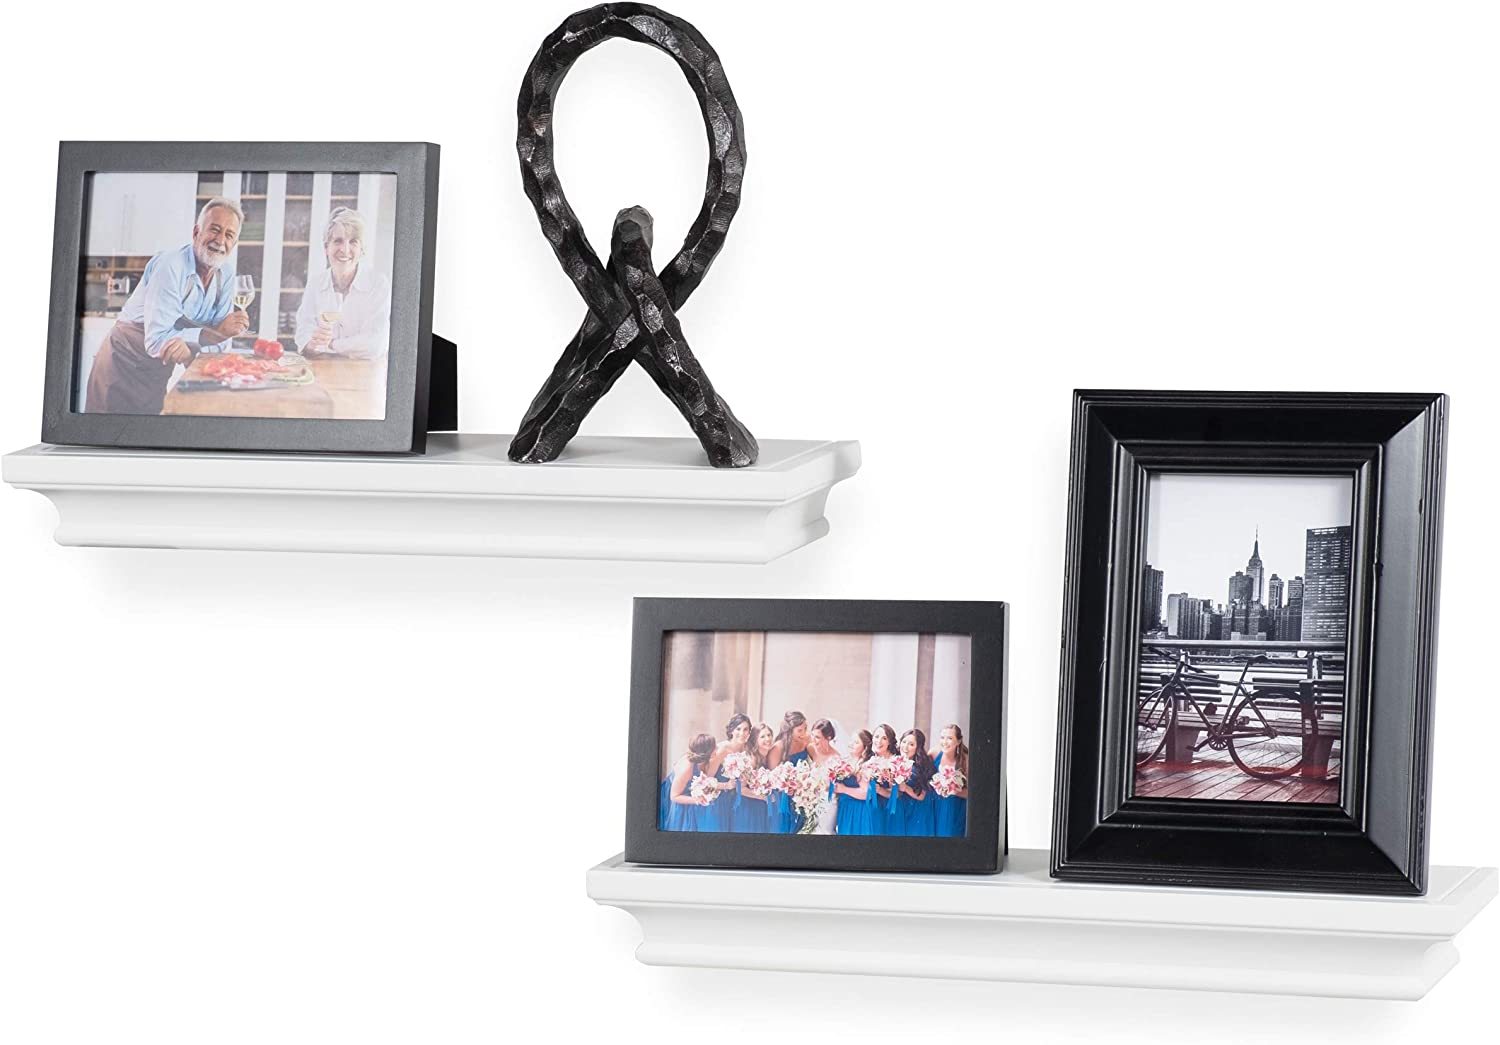 brightmaison Crown Molding Floating Shelves Picture Ledge – 2 Set Shelf – for Frames Book Display Décor with Concealed Metal Bracket for Stable Wall Mount (White)